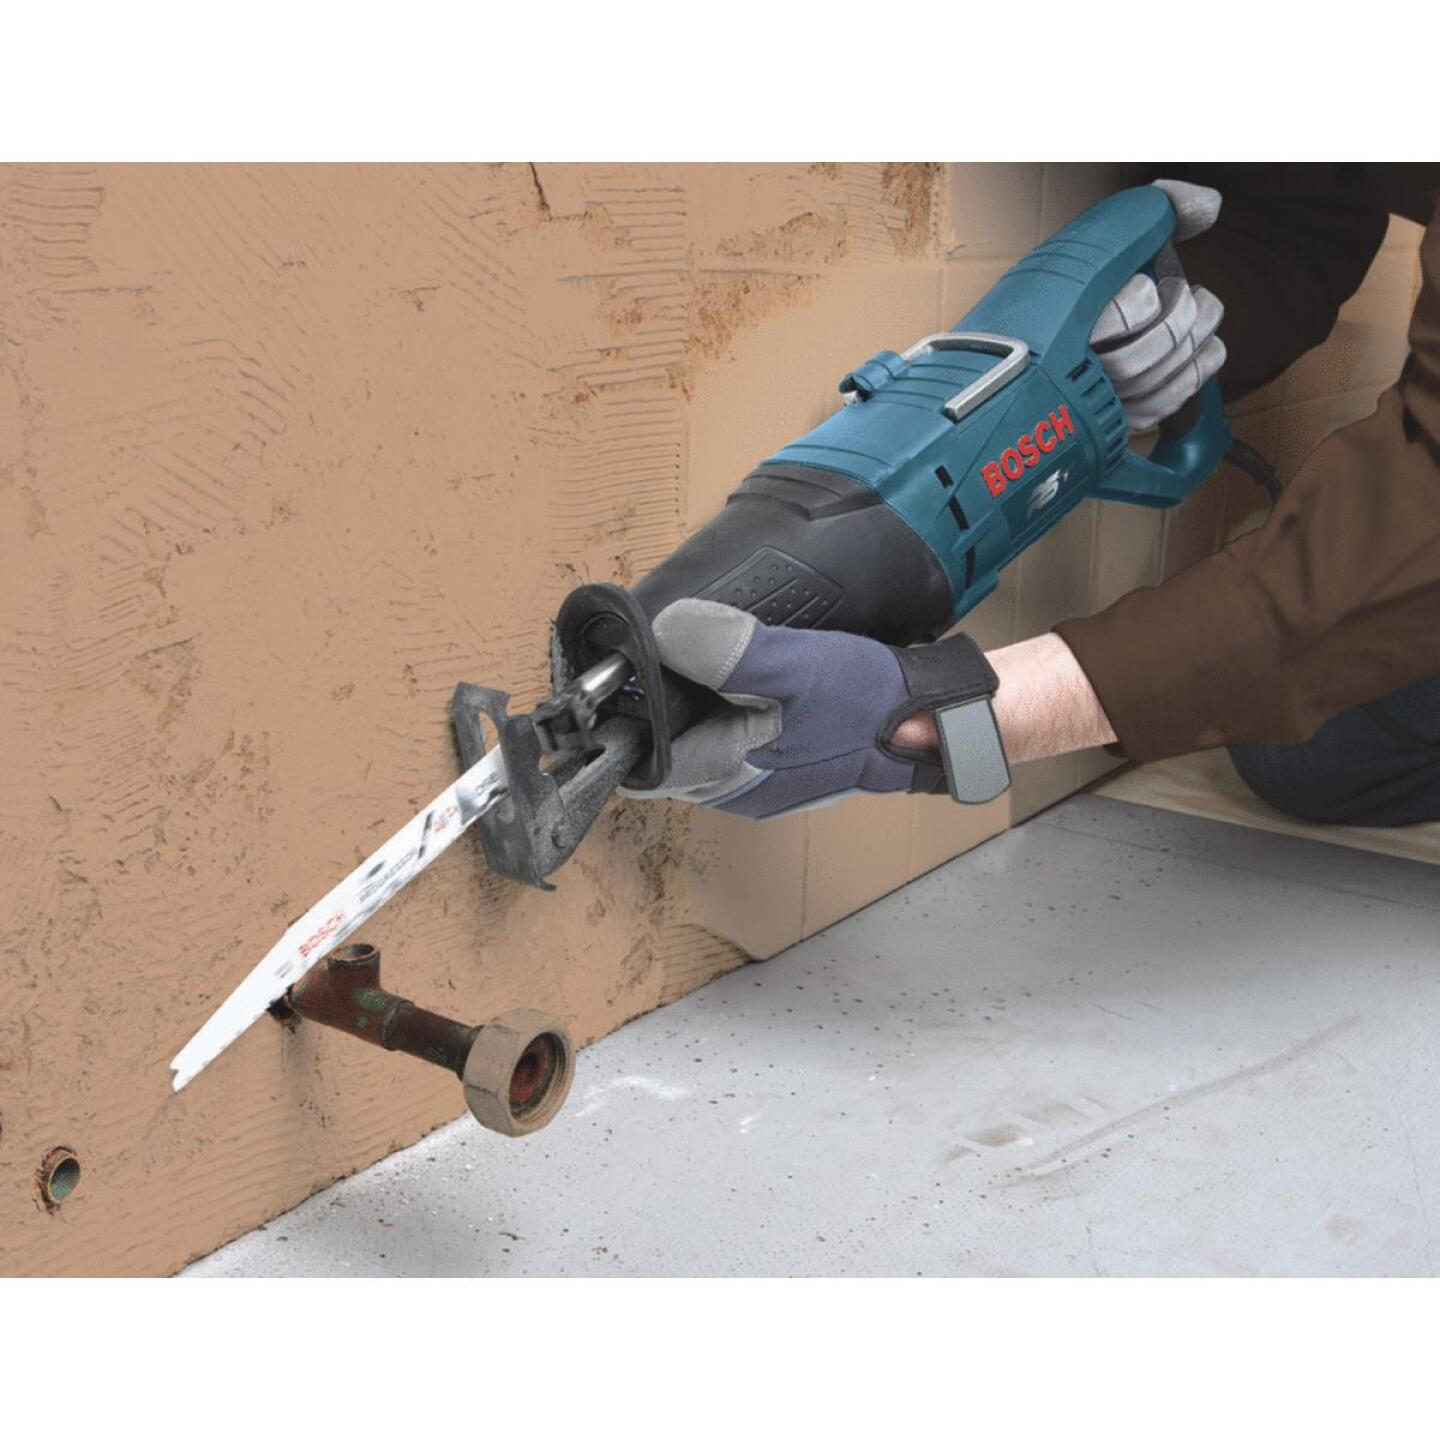 Bosch 11-Amp Reciprocating Saw Kit Image 3